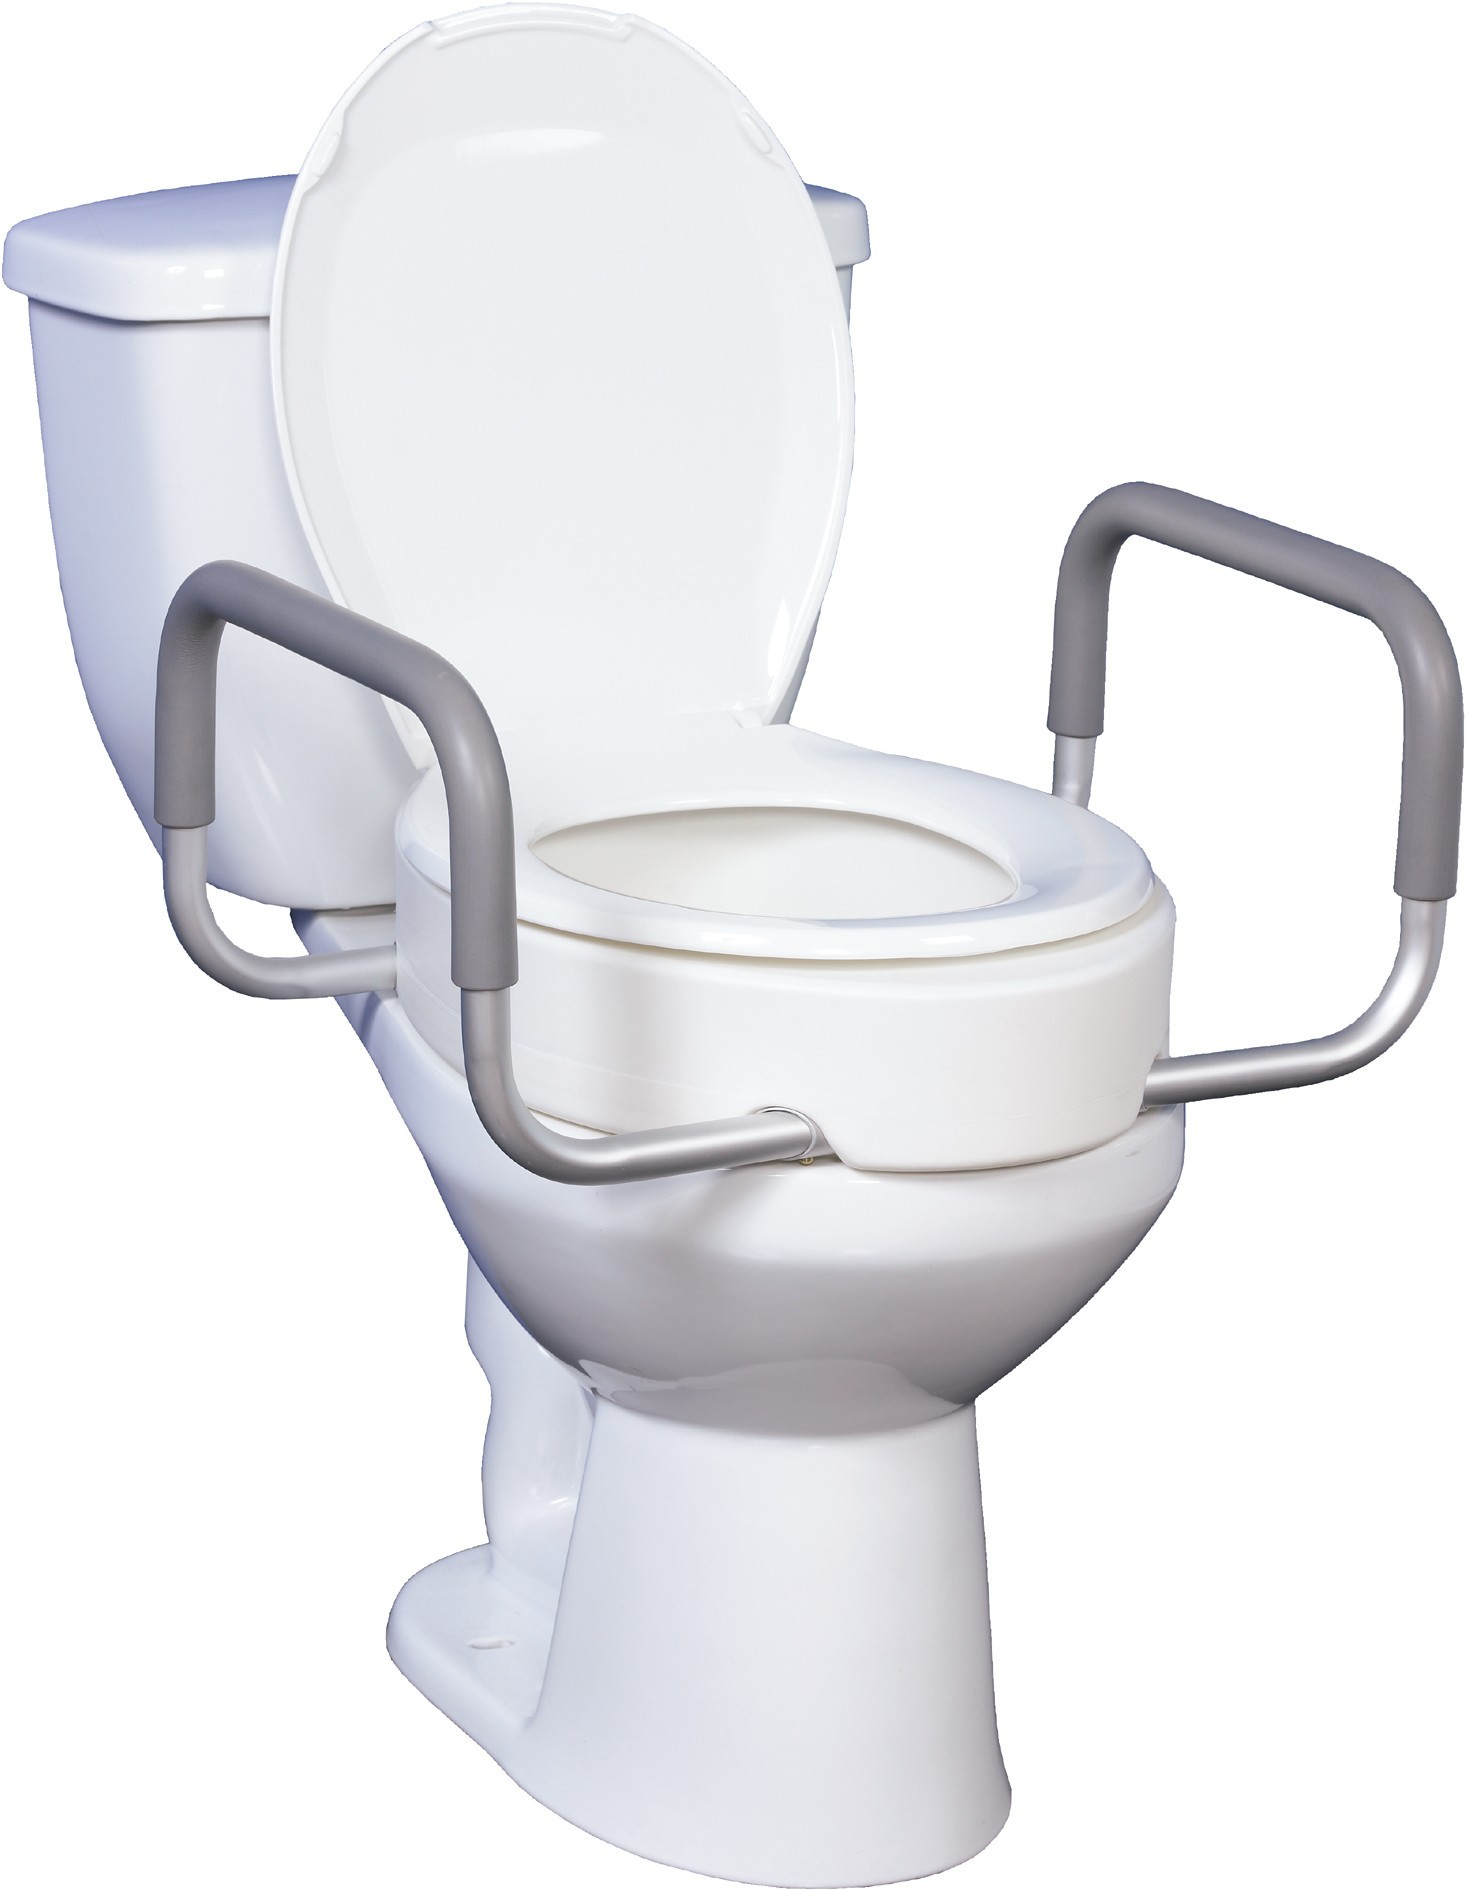 Drive® Elongated Toilet Safety Frame #12403